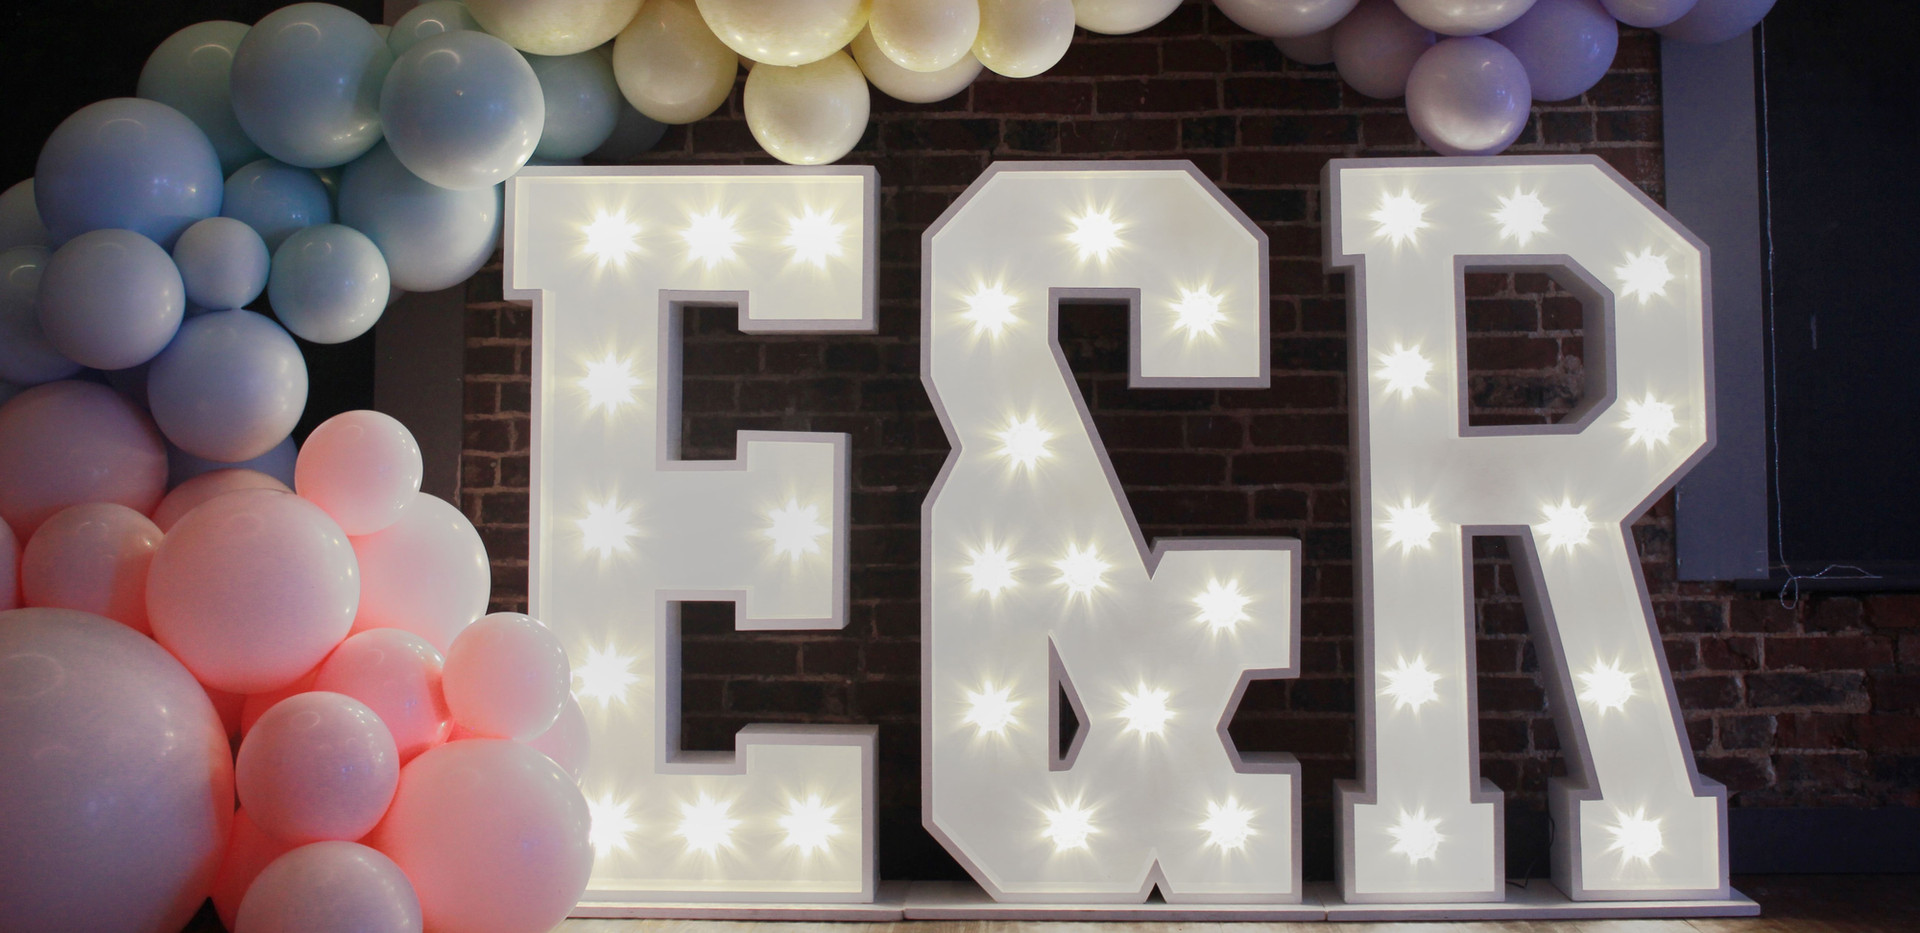 LED light up letters